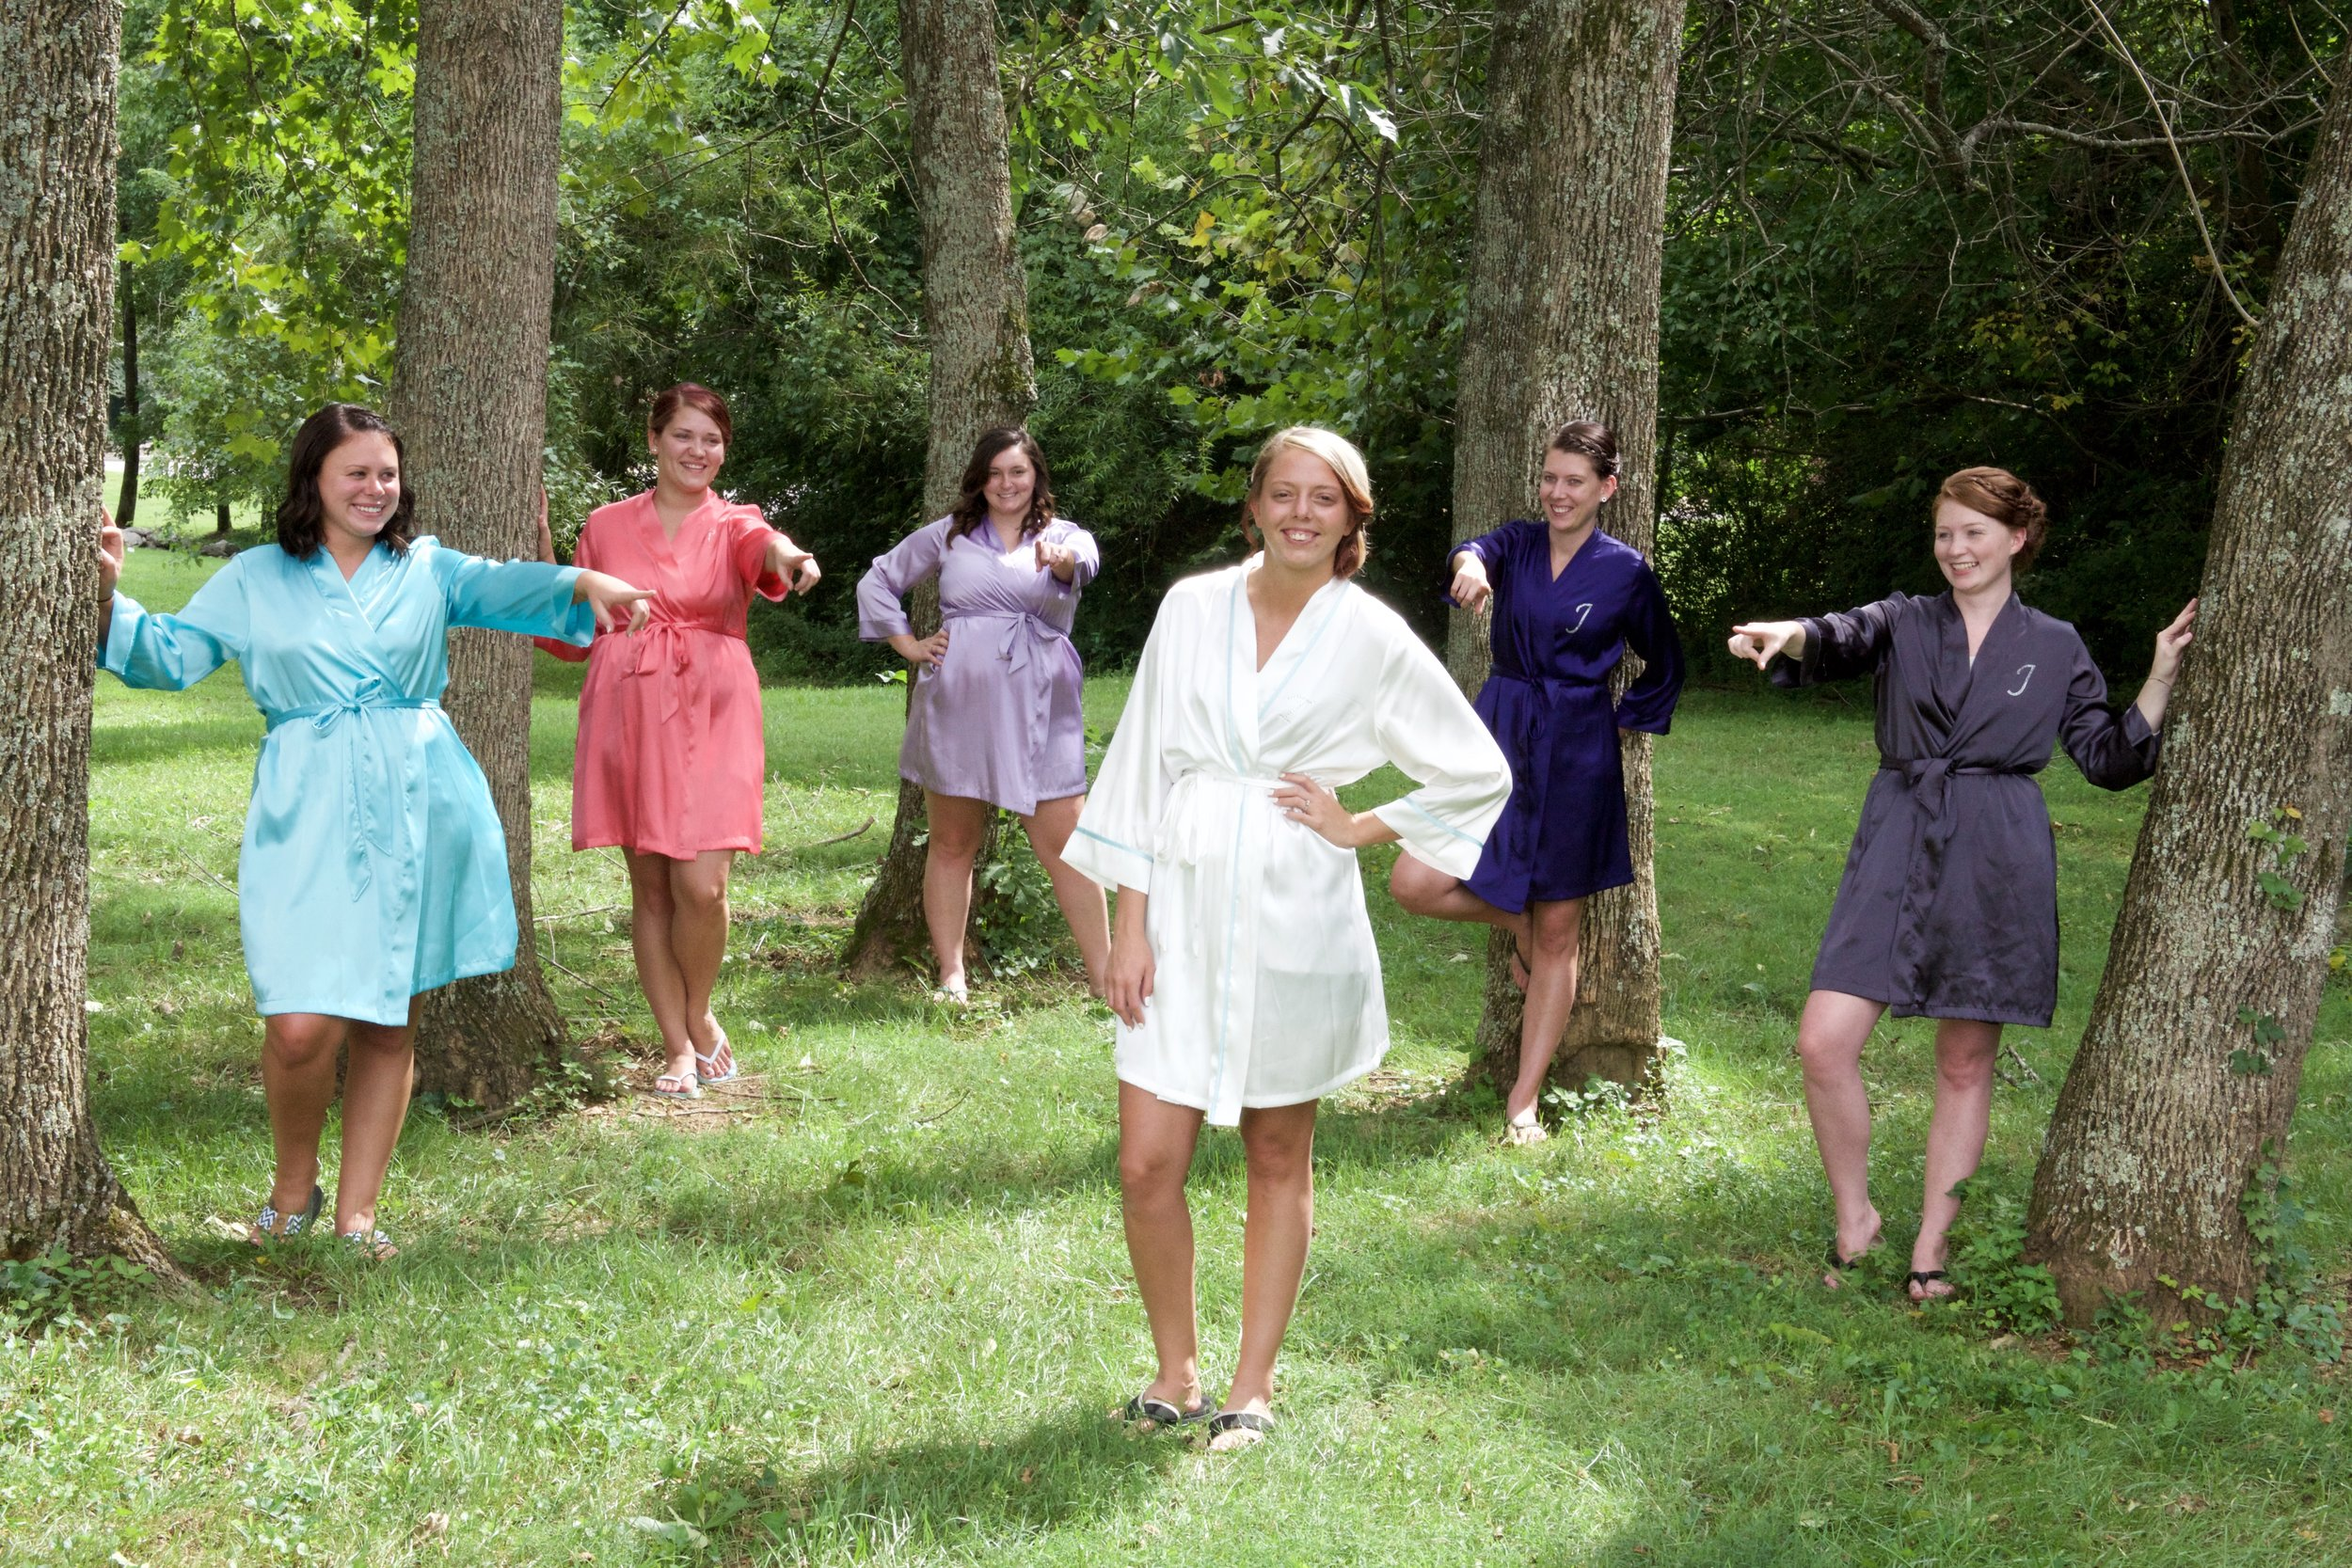 If you want fun bridemaids photos, you better plan for it.